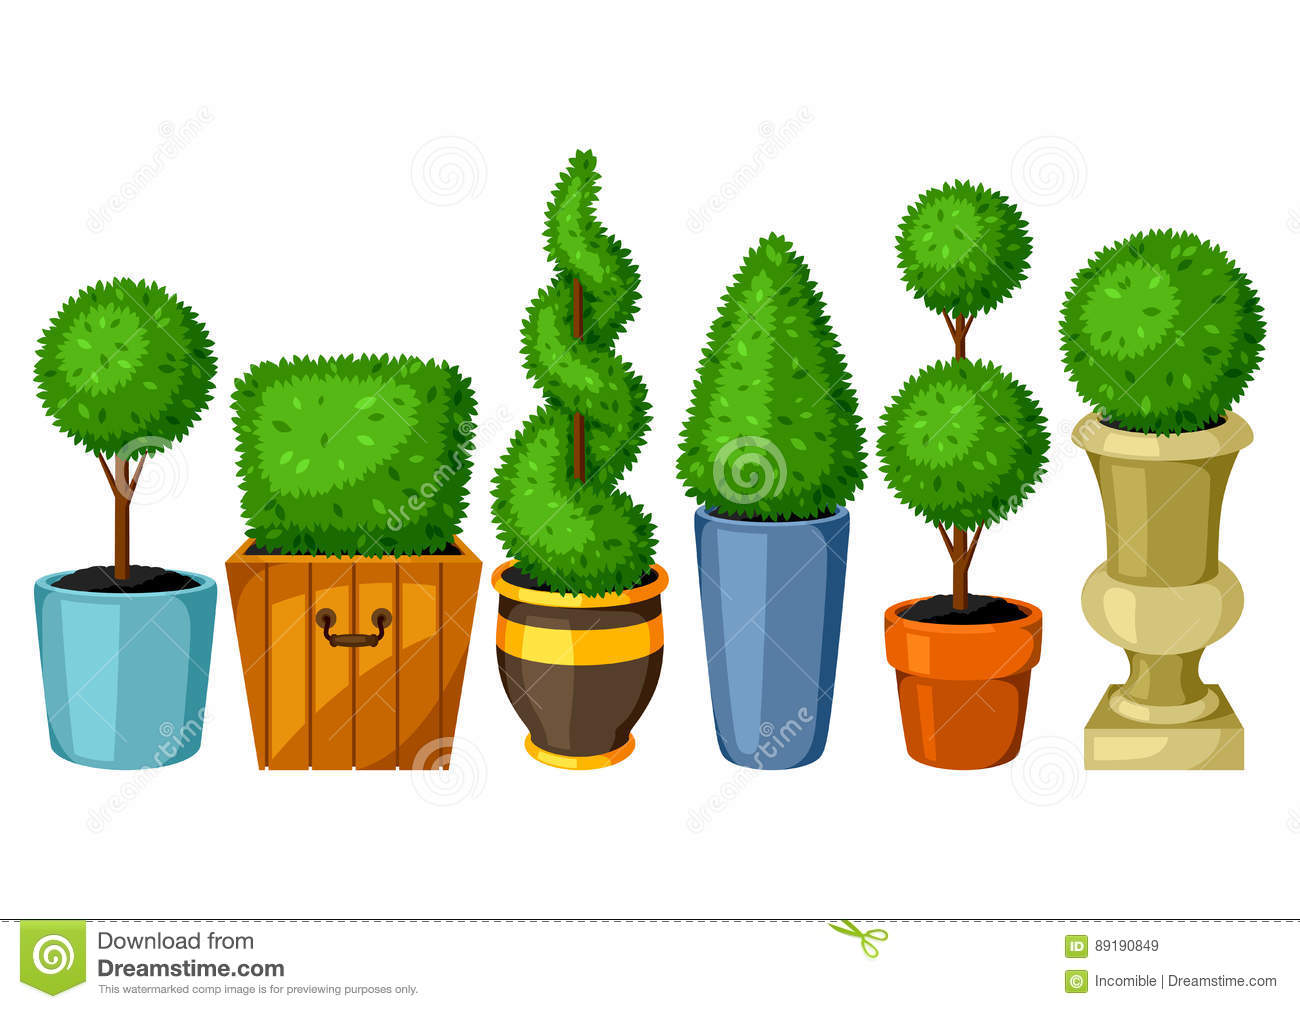 Boxwood Topiary Garden Plants Set Of Decorative Trees In Flowerpots Stock Vector Illustration Of Cutout Nature 89190849